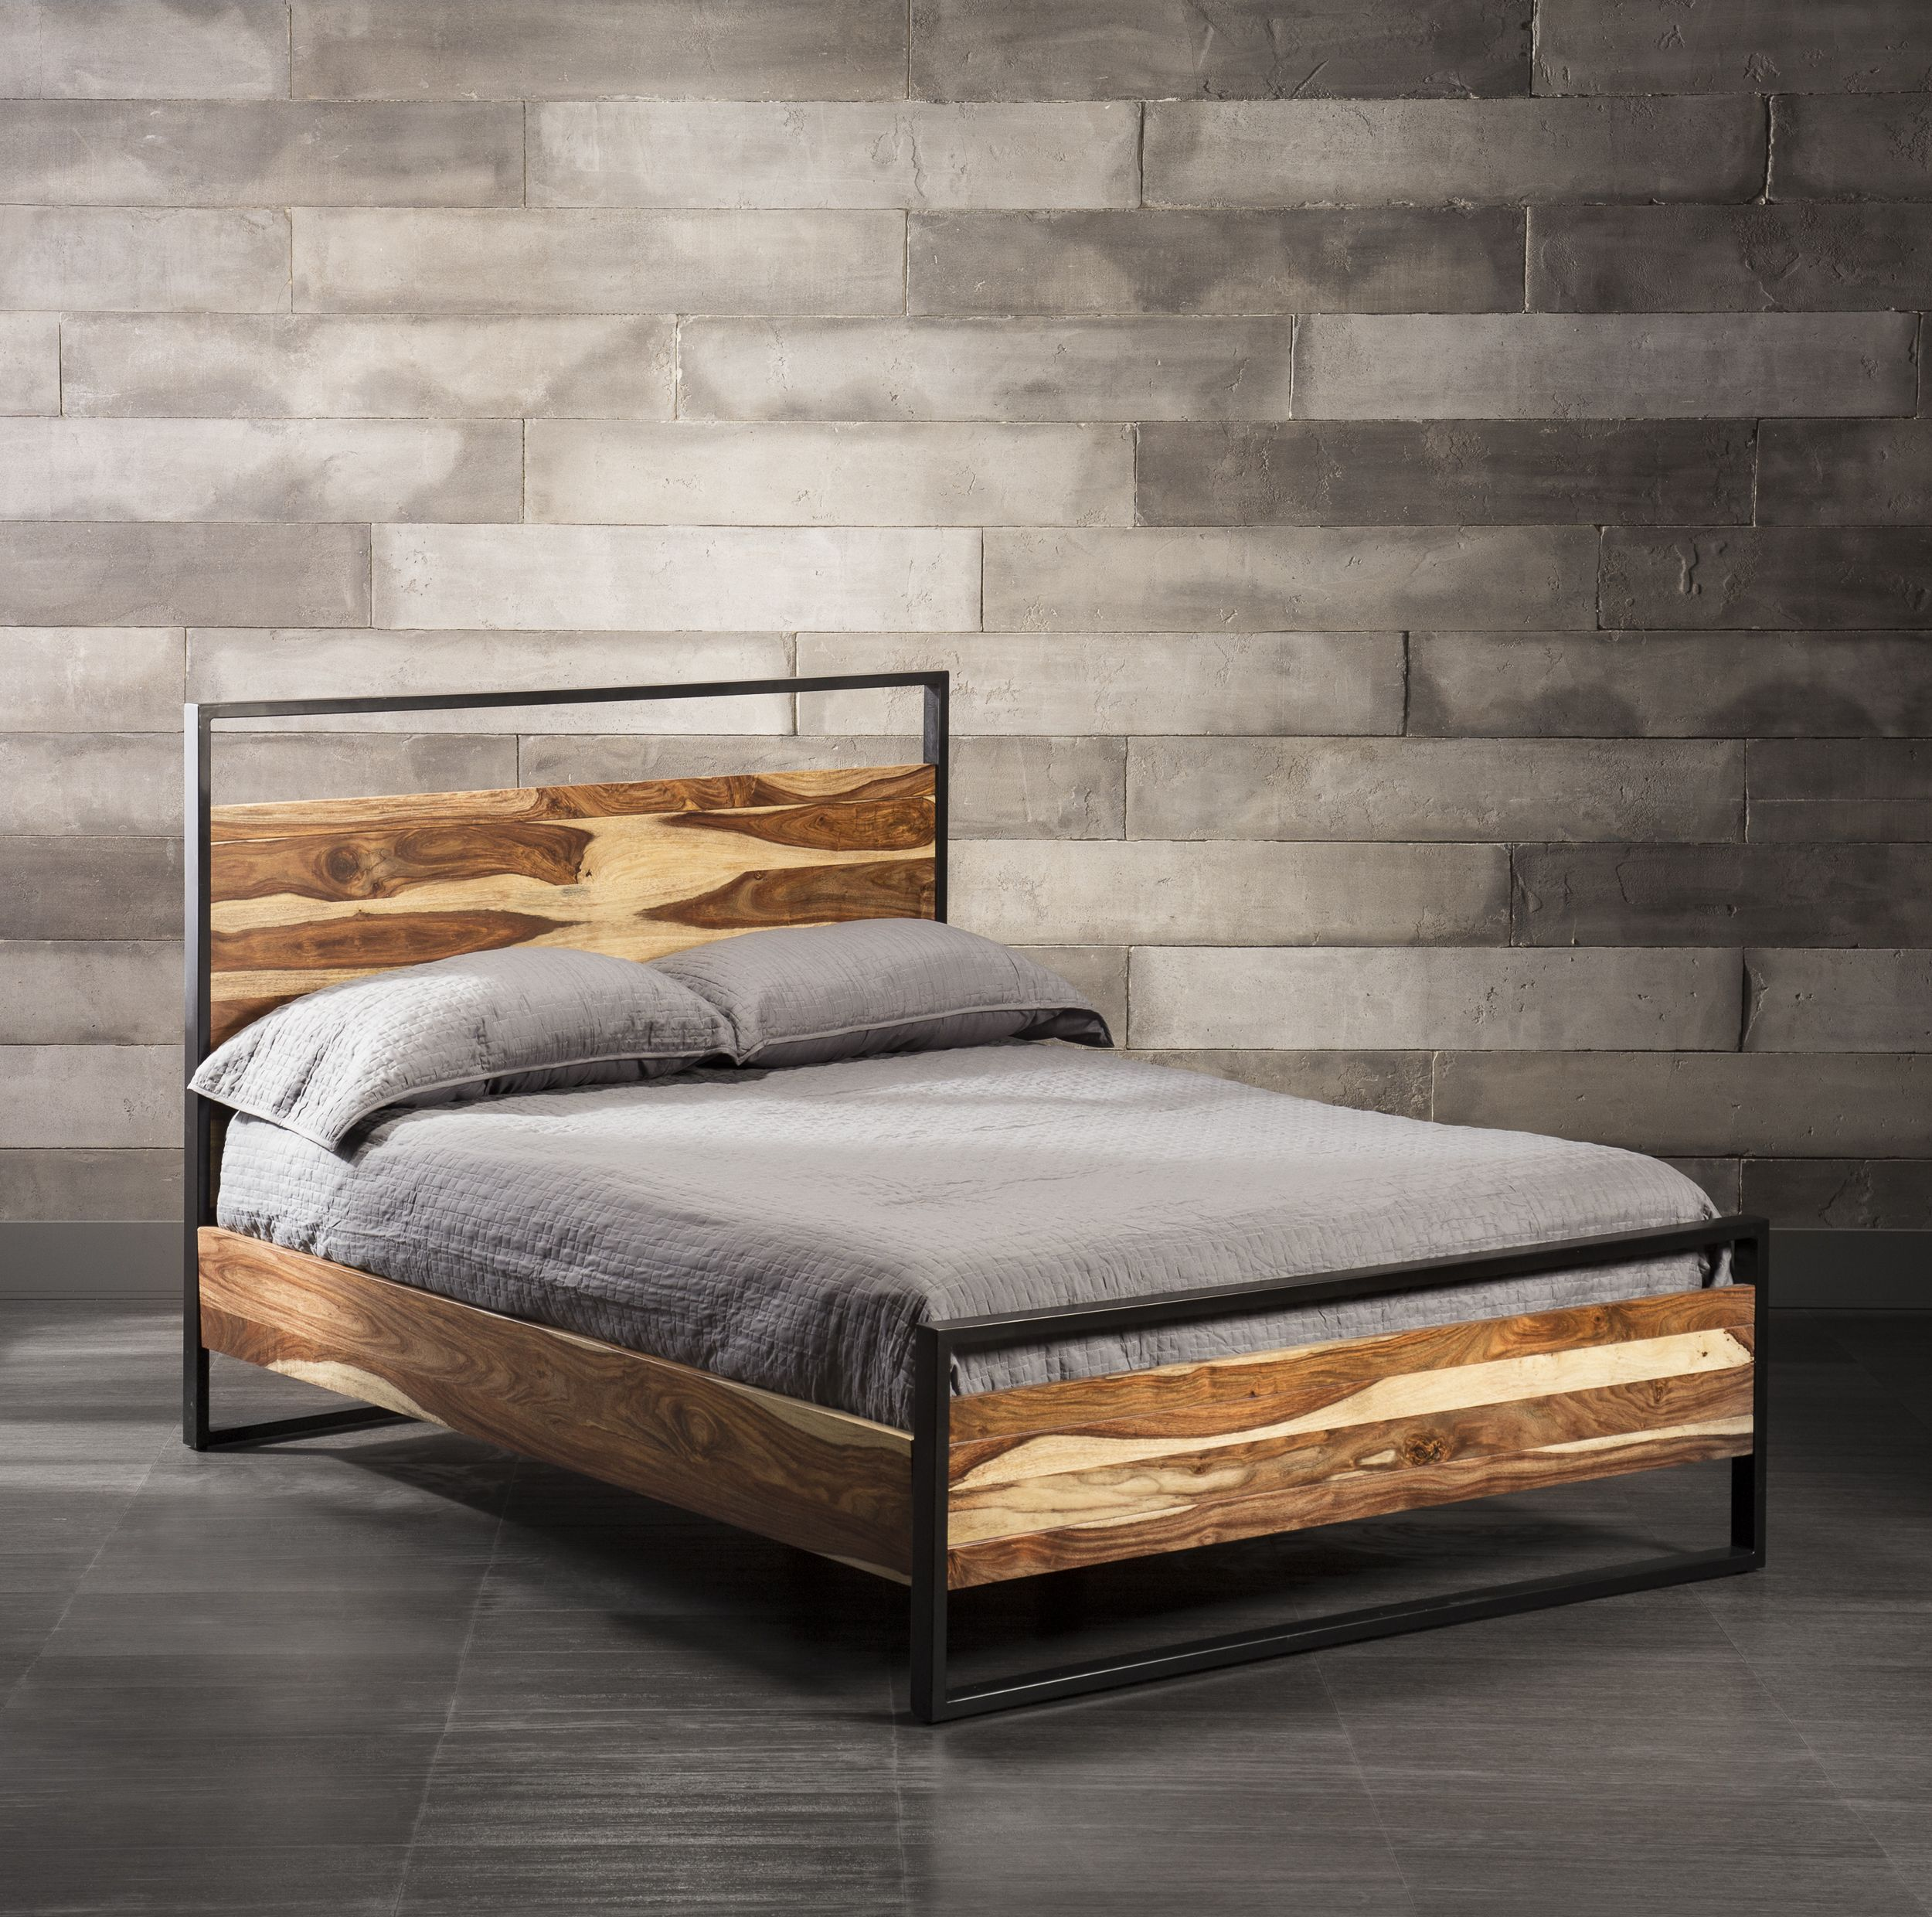 under best built headboard cool twin near king queen of me plans beds large image modern unique in and white frame underneath frames panel headboards platform new drawers size ae with storage full metal sale bedroom ideas bed mattress for upholstered good basket